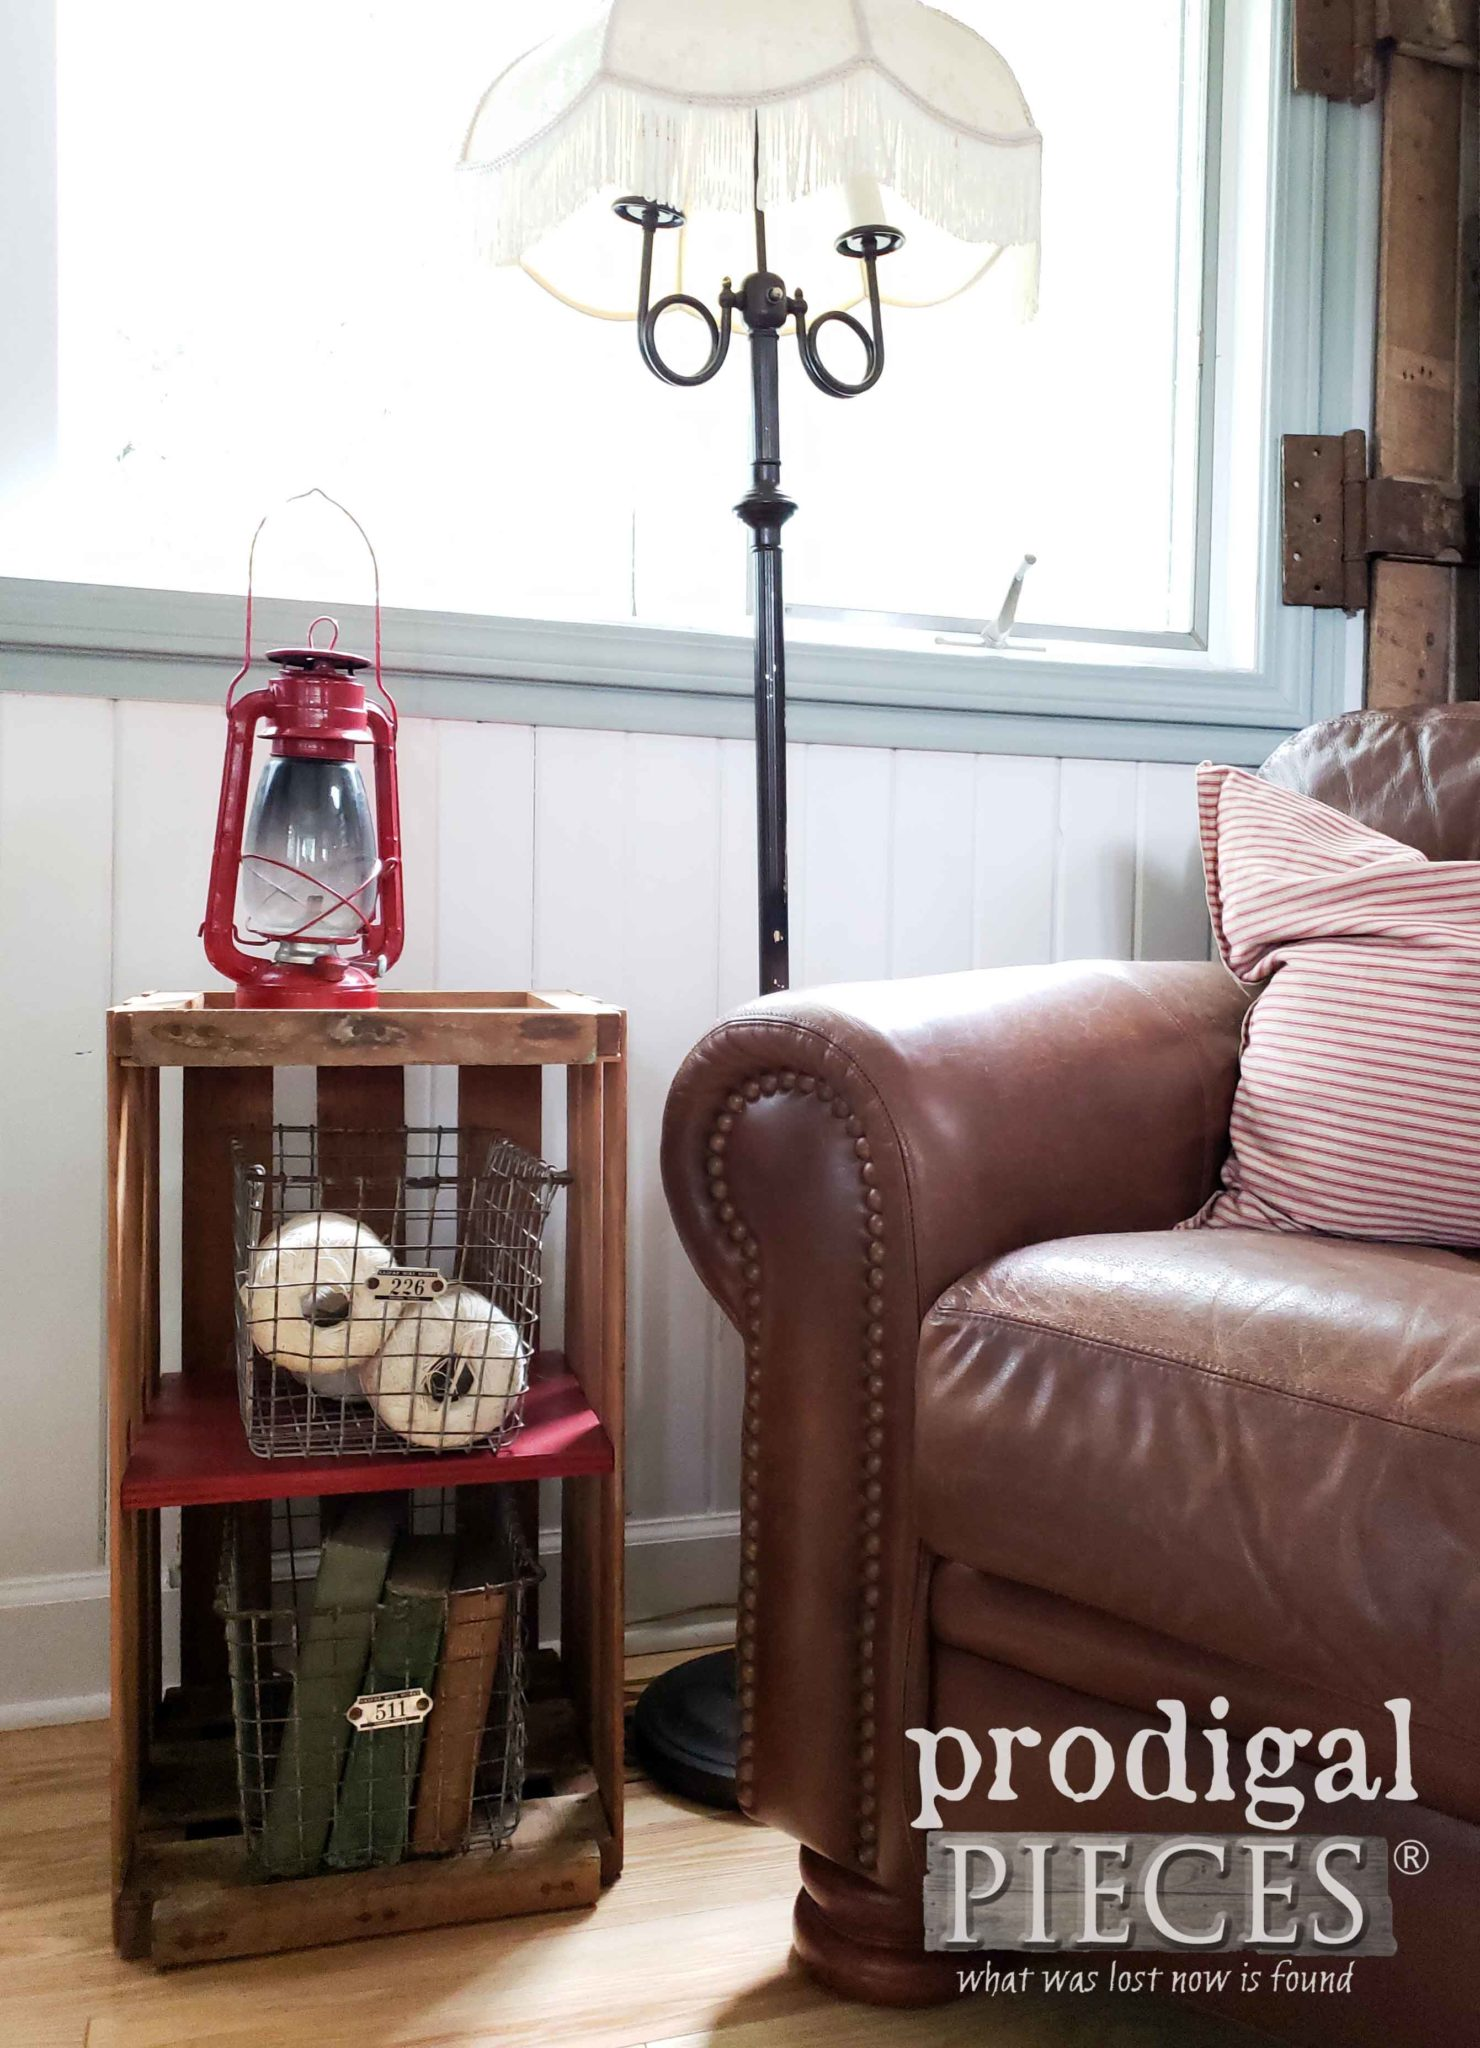 Cozy Farmhouse Style Decor using Flea Market Finds by Larissa of Prodigal Pieces | prodigalpieces.com #prodigalpieces #diy #home #farmhouse #homedecor